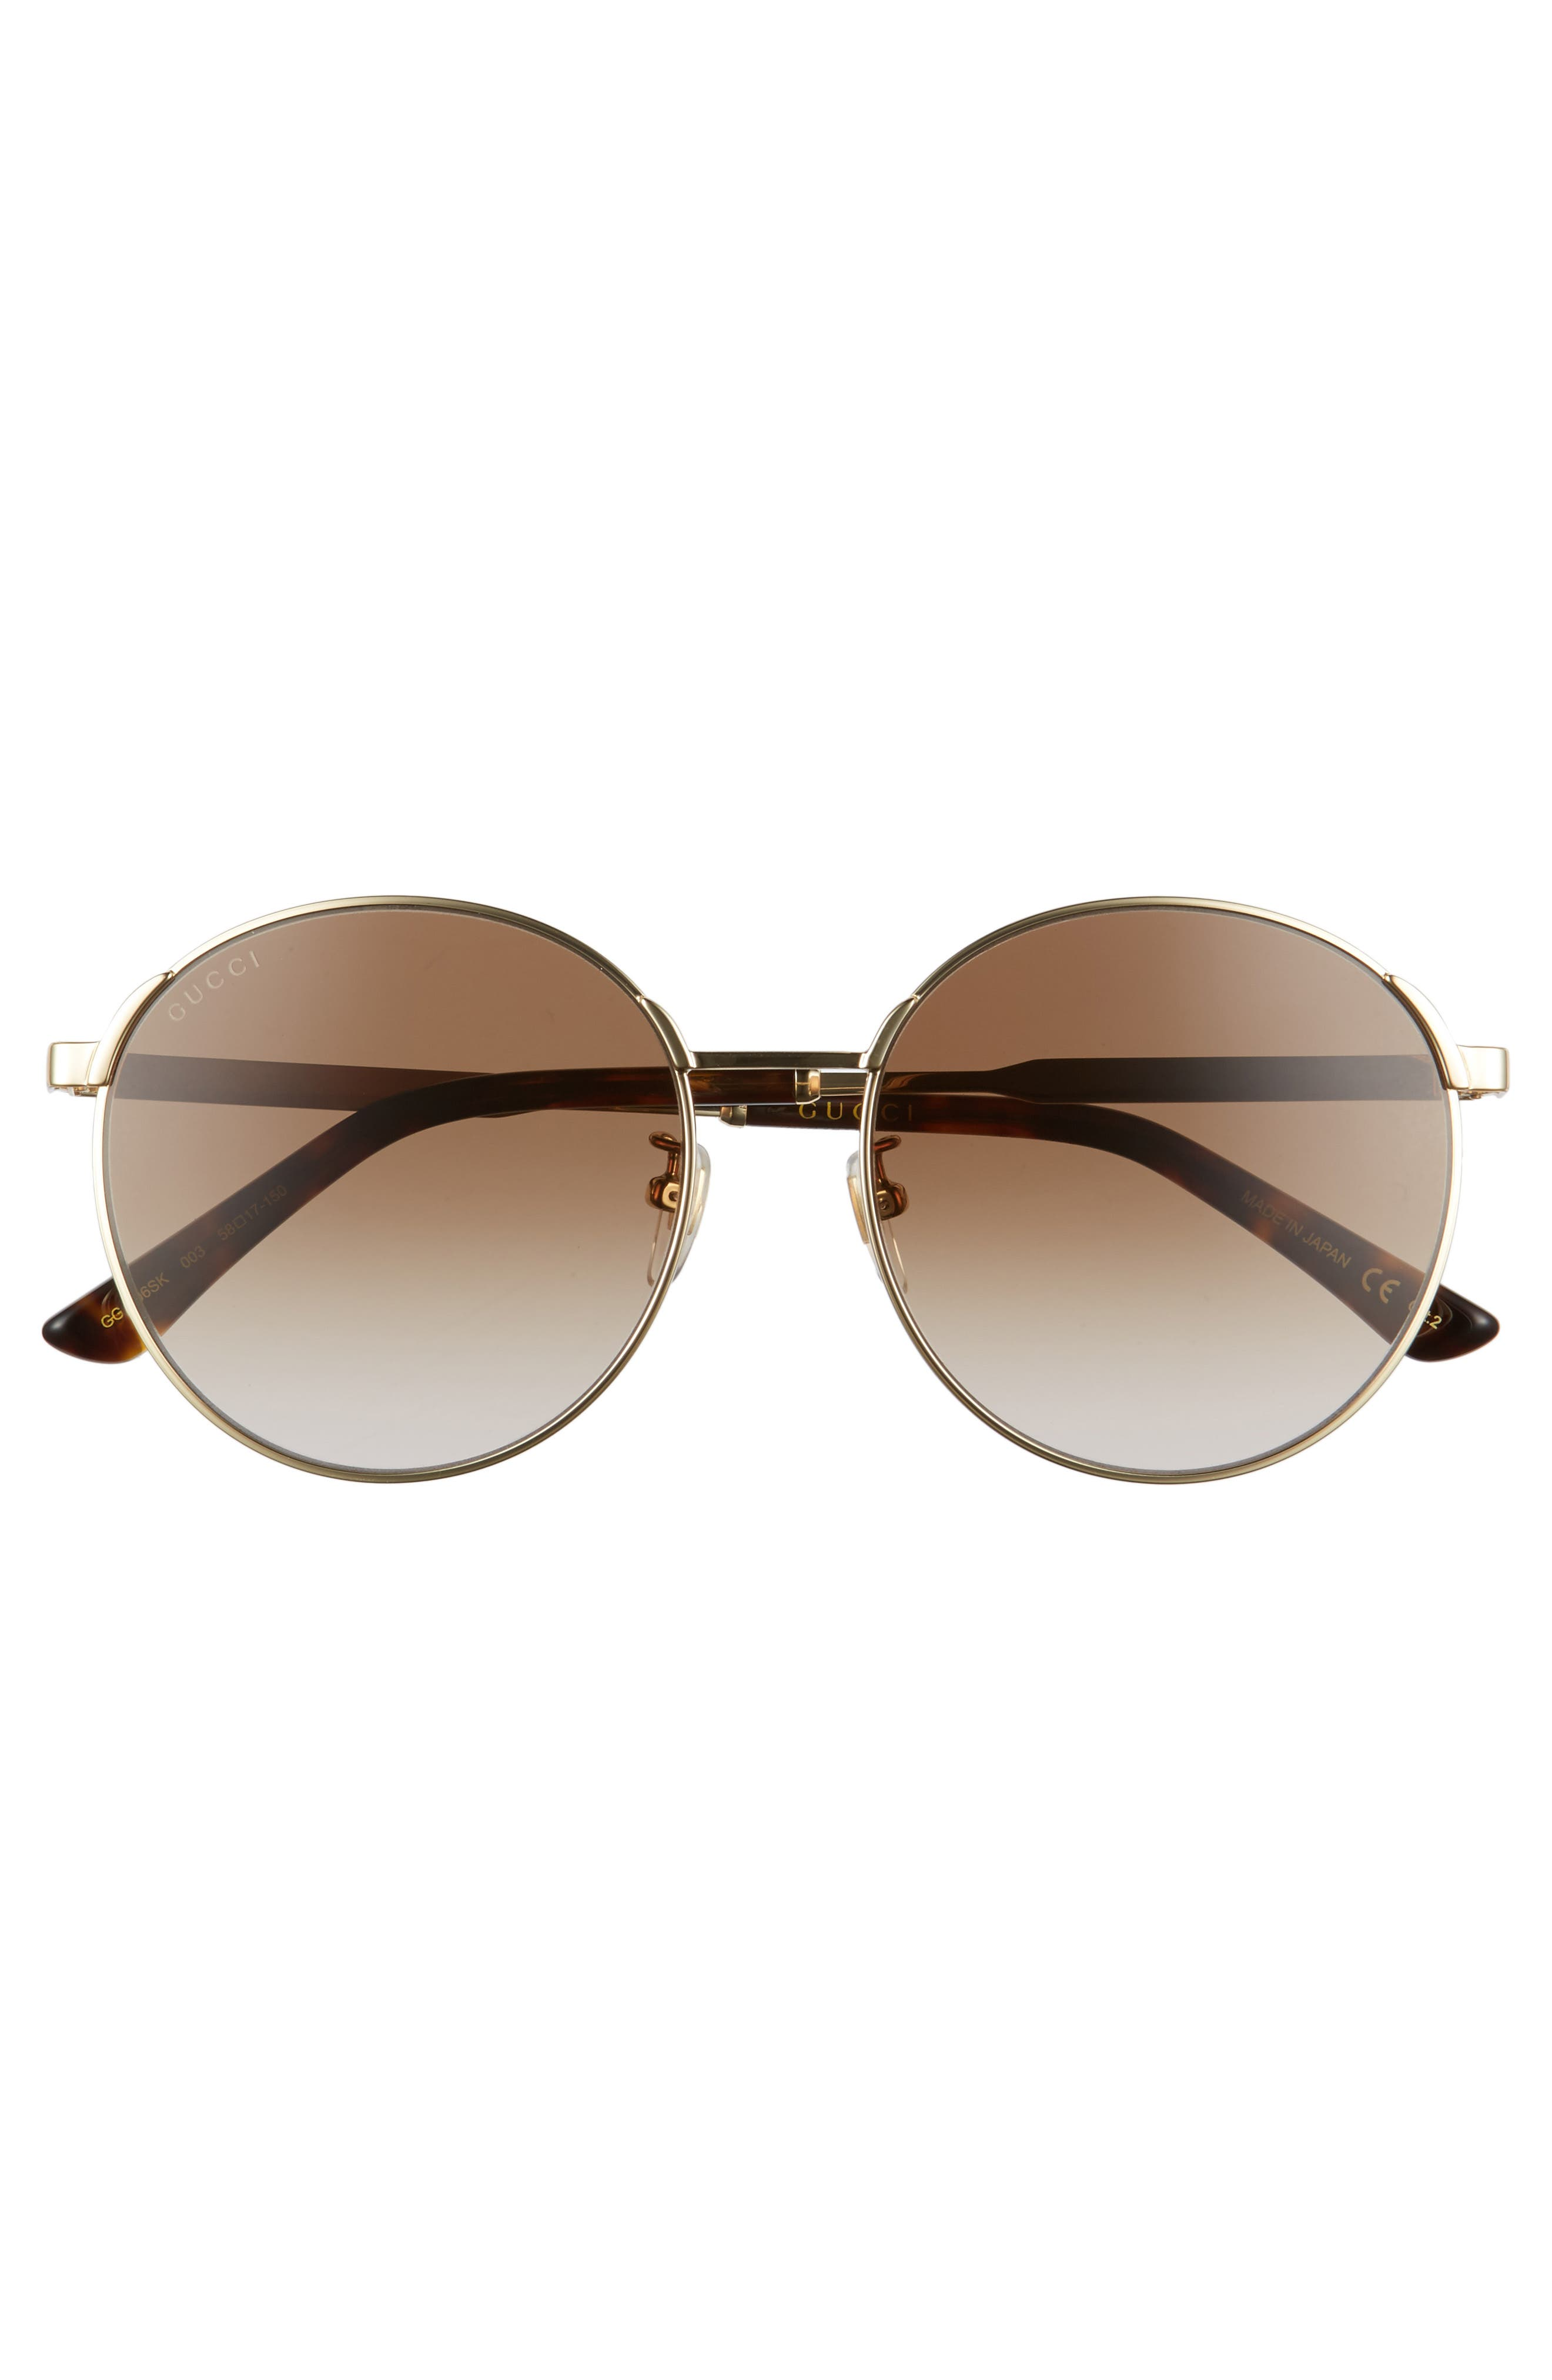 58mm Round Sunglasses,                             Alternate thumbnail 3, color,                             Gold/ Brown